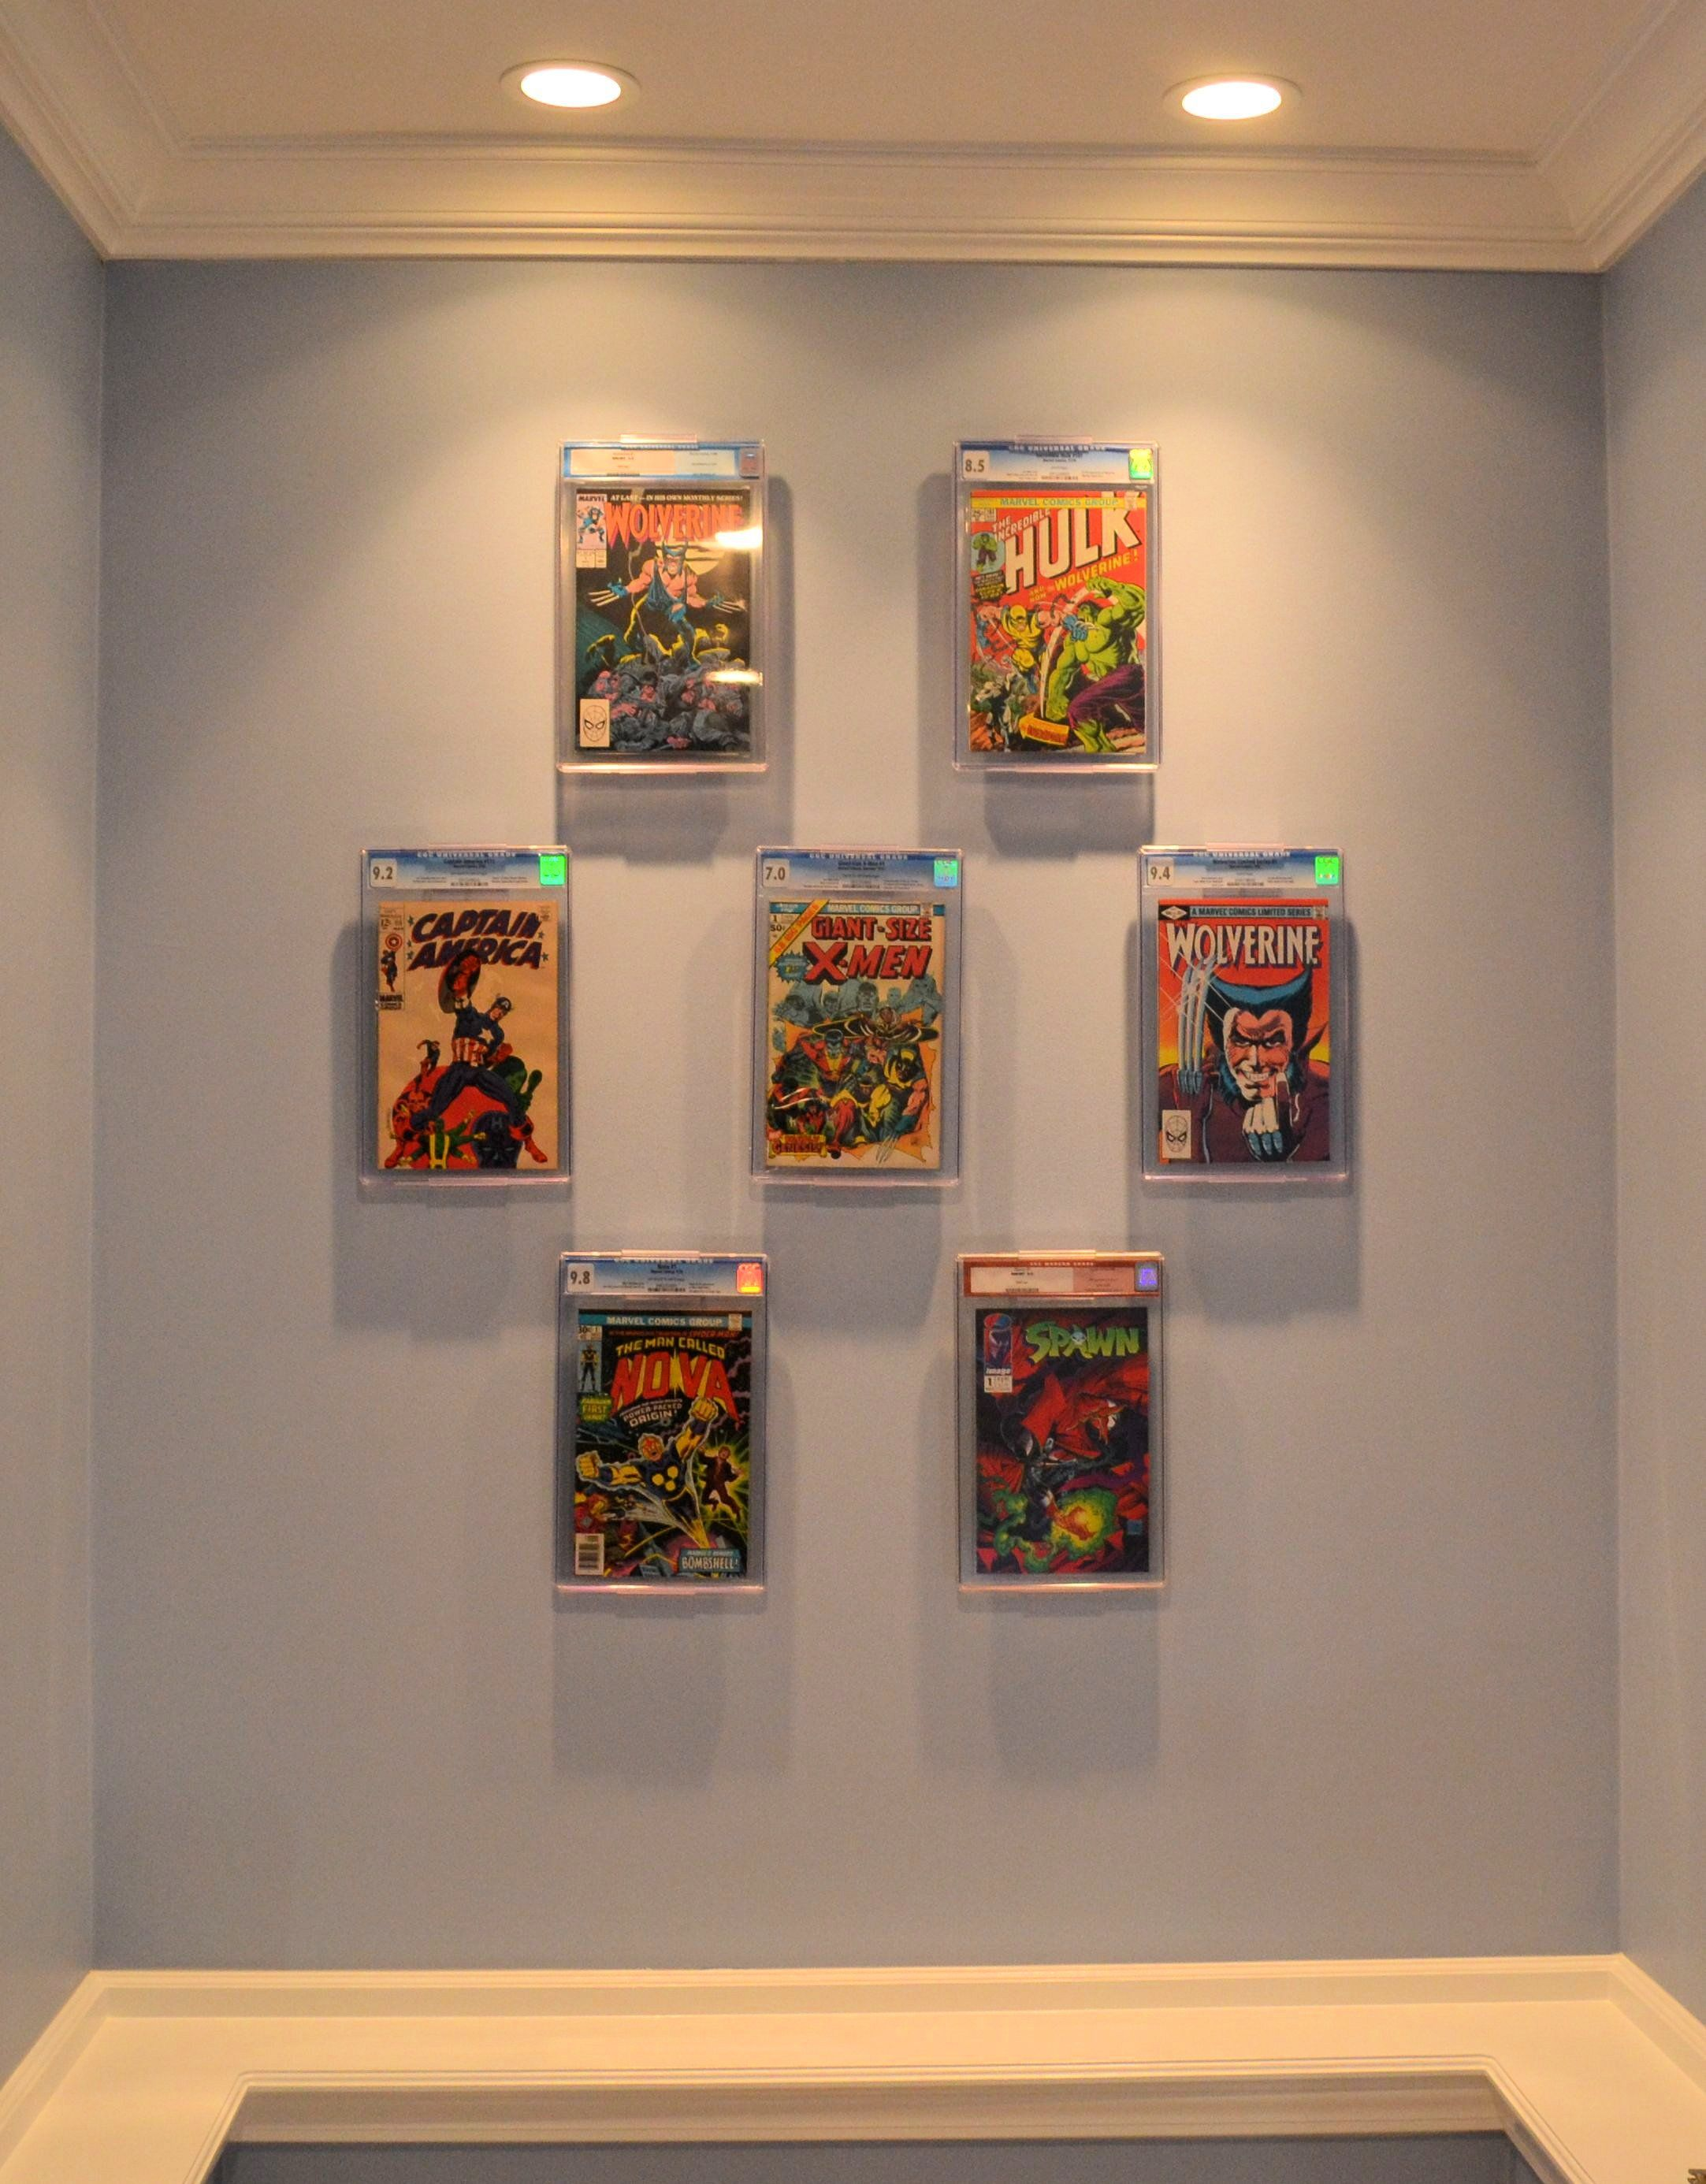 NEW Two In One Comic Book And Collectible Display That Can Be - Display shelves collectibles wall shelves for collectibles display